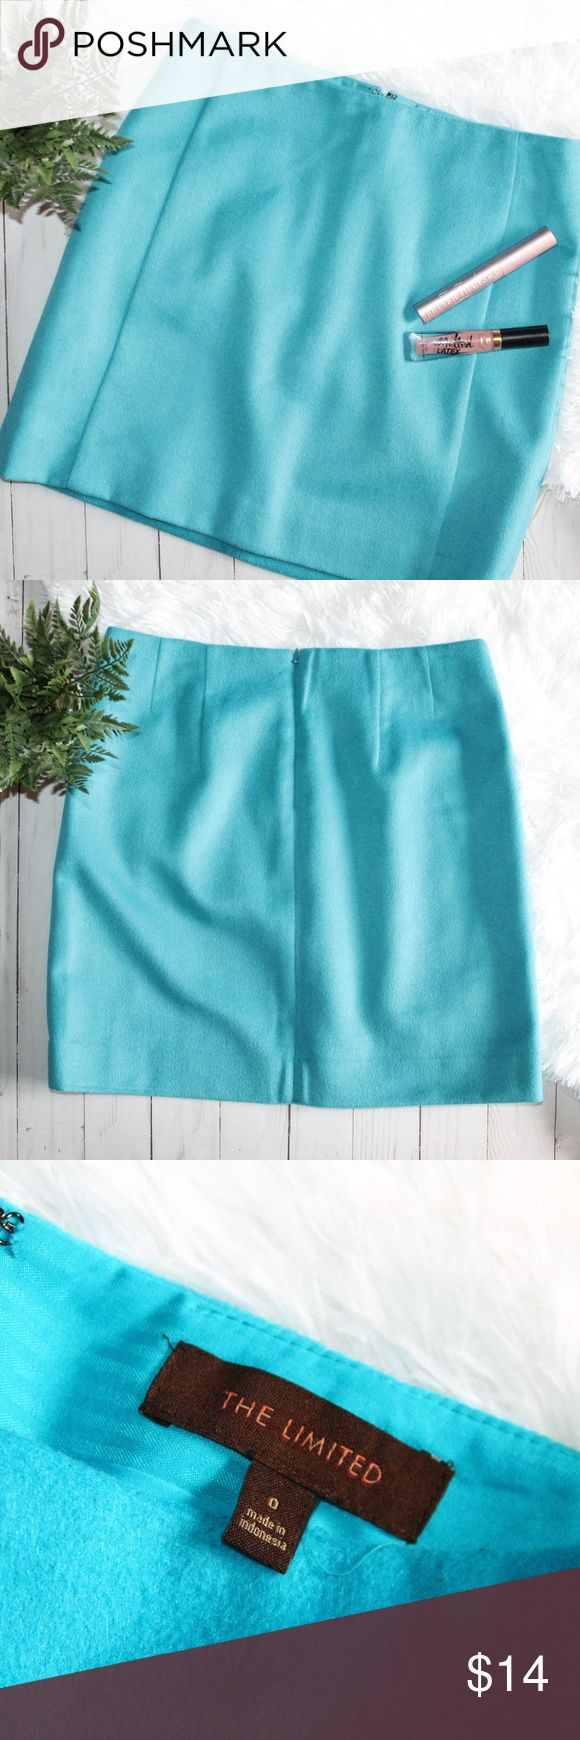 """WOOL BLEND MINI SKIRT - THE LIMITED This is an adorable skirt in a beautiful ocean blue from The Limited. The color is hard to describe - it is a striking, bright shade not quite teal, but not a true blue either. Dry clean only. (It looks, only in certain light, like there is a little scuffed up area in the back, but it is hard to see - it's the last pic. Priced accordingly.) Back zip. Wool and polyester. Lined.  Length: 16"""" Waist laying flat: 14.25"""" The Limited Skirts Mini"""